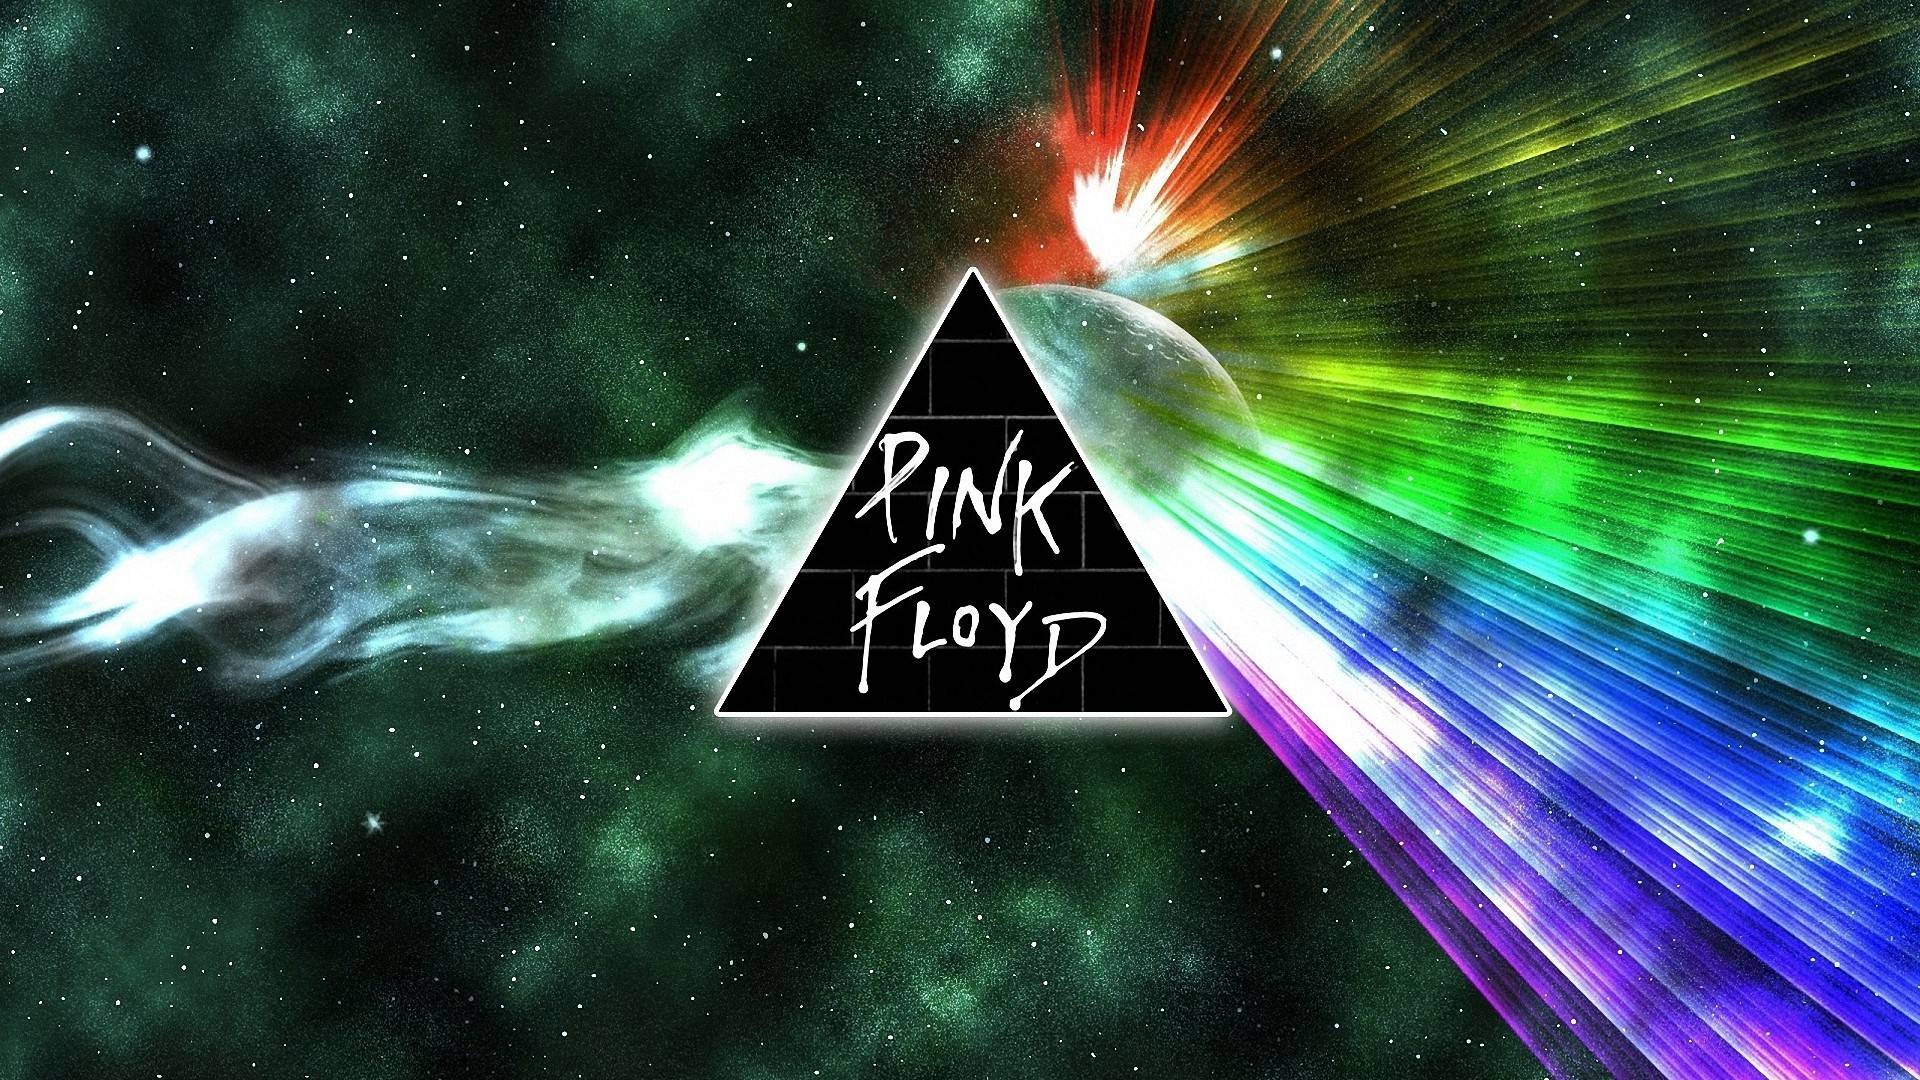 cool music pink floyd